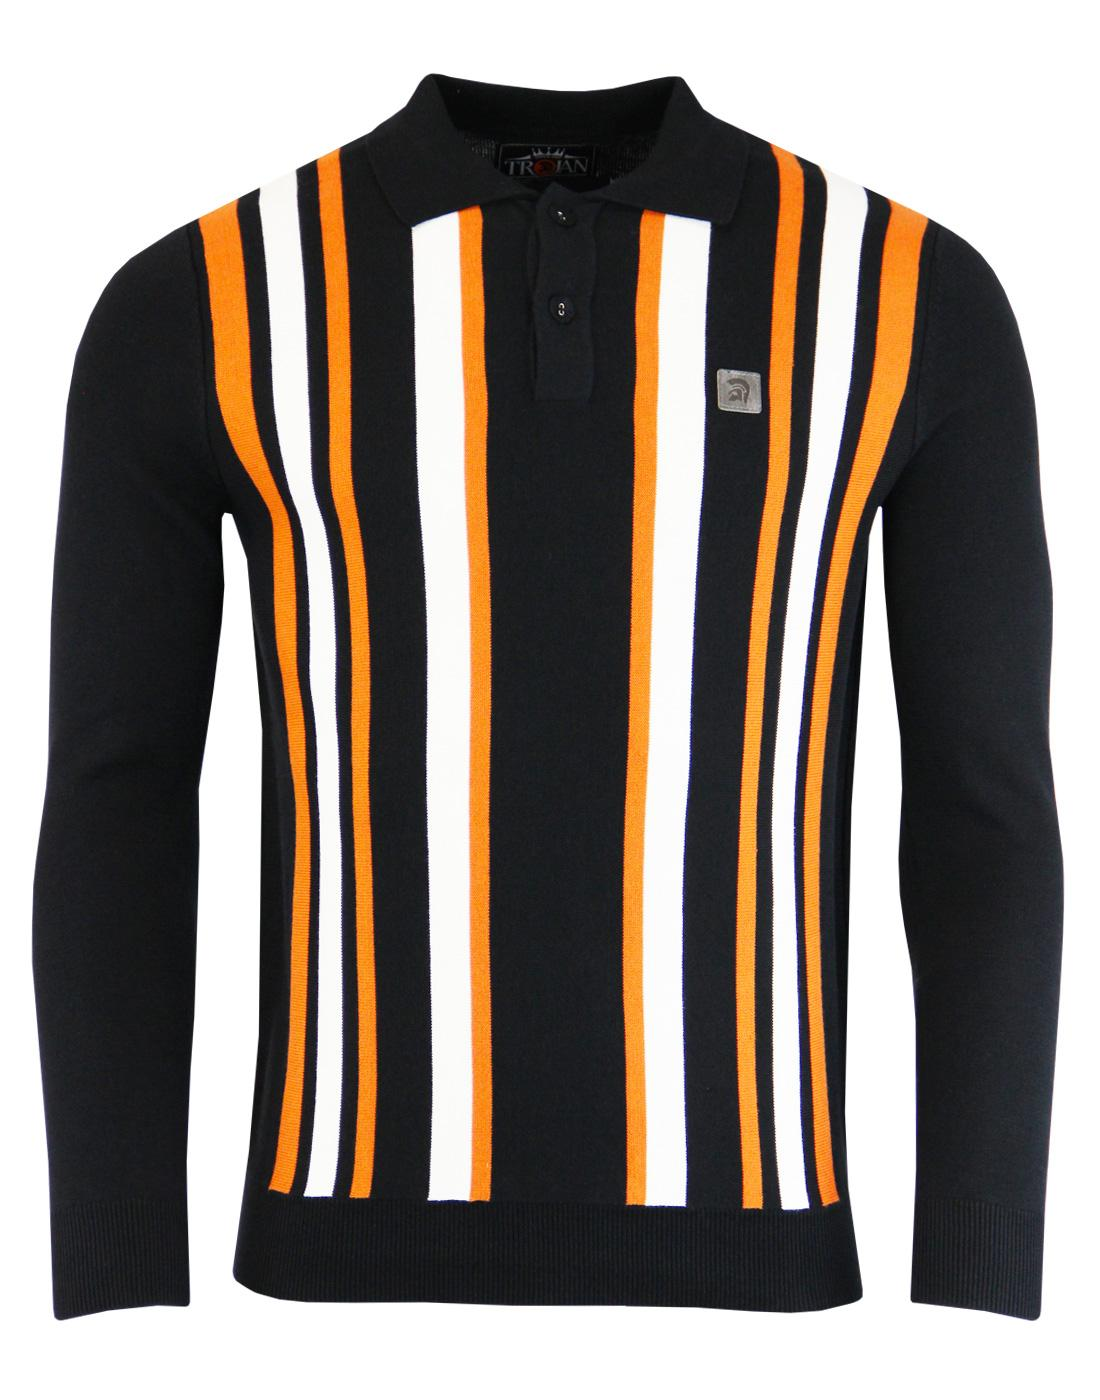 TROJAN RECORDS Mod Ska Stripe Panel Knit Polo (B)